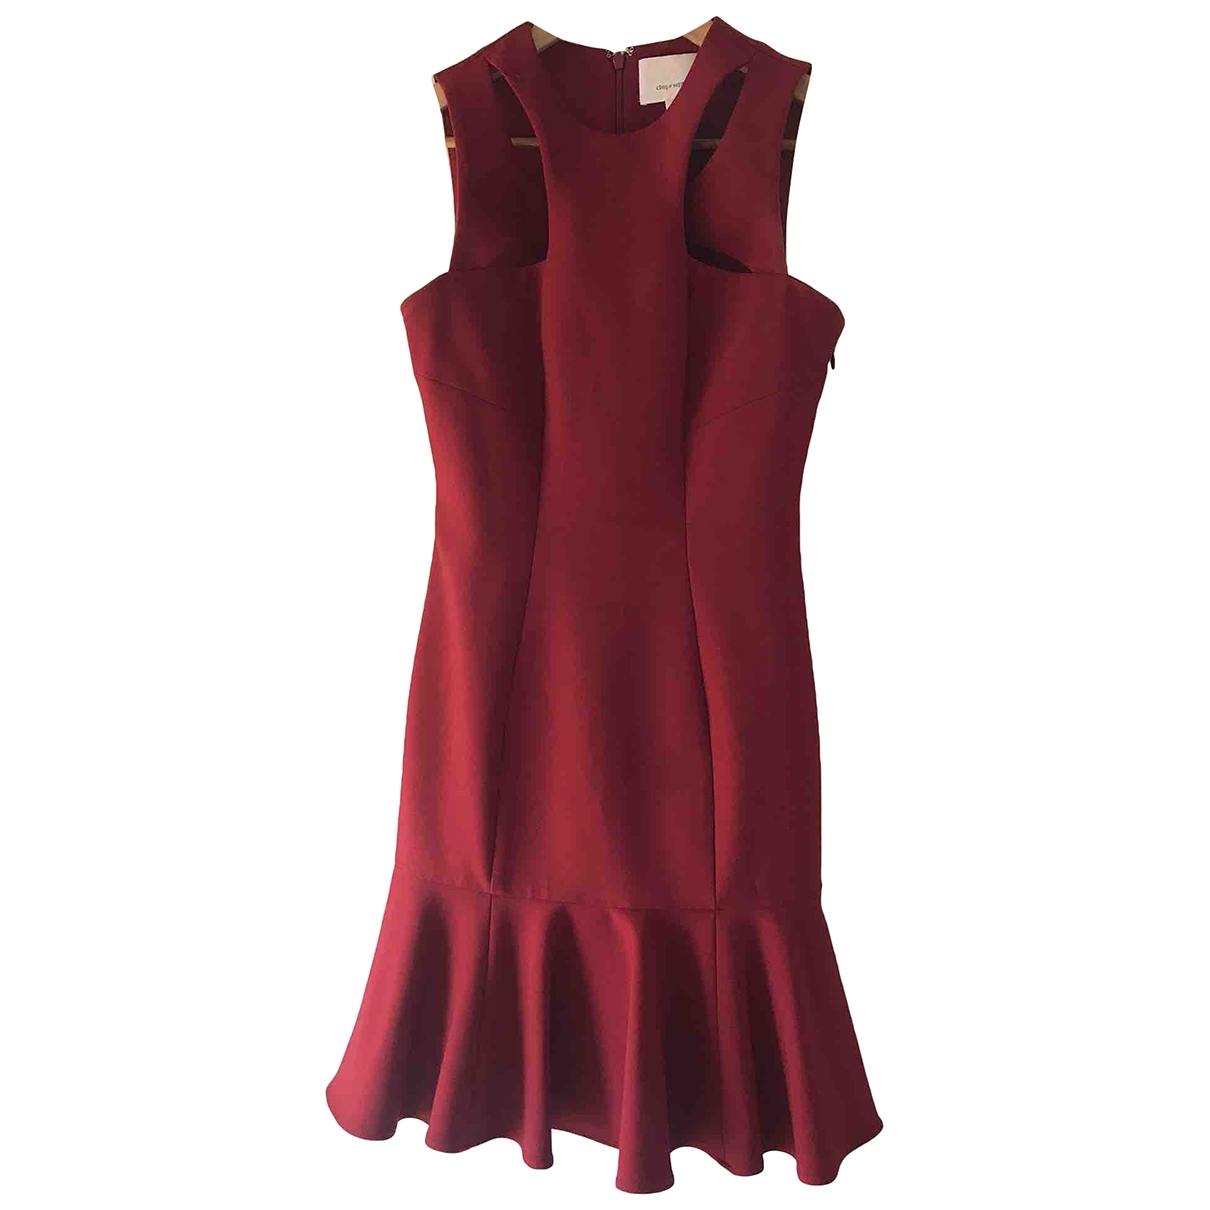 Cinq A Sept \N Kleid in  Bordeauxrot Polyester